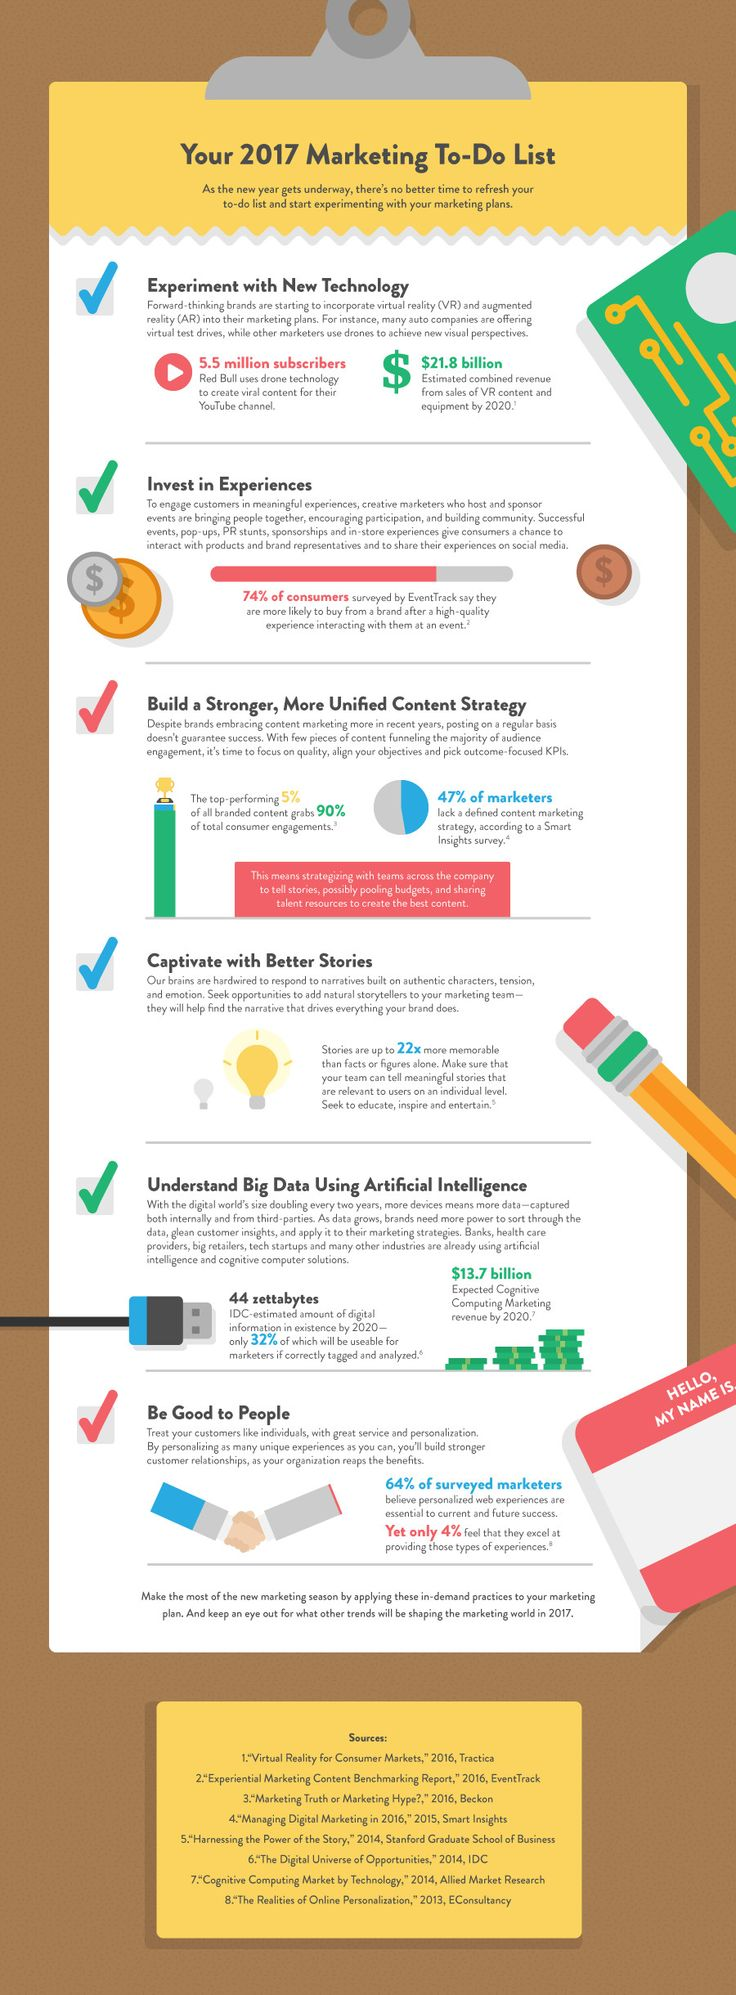 What should be on your 2017 marketing to-do list? Technology, content strategy, events, data, AI? Check out this infographic from IBM, and check off items on your marketing strategy to-do list.